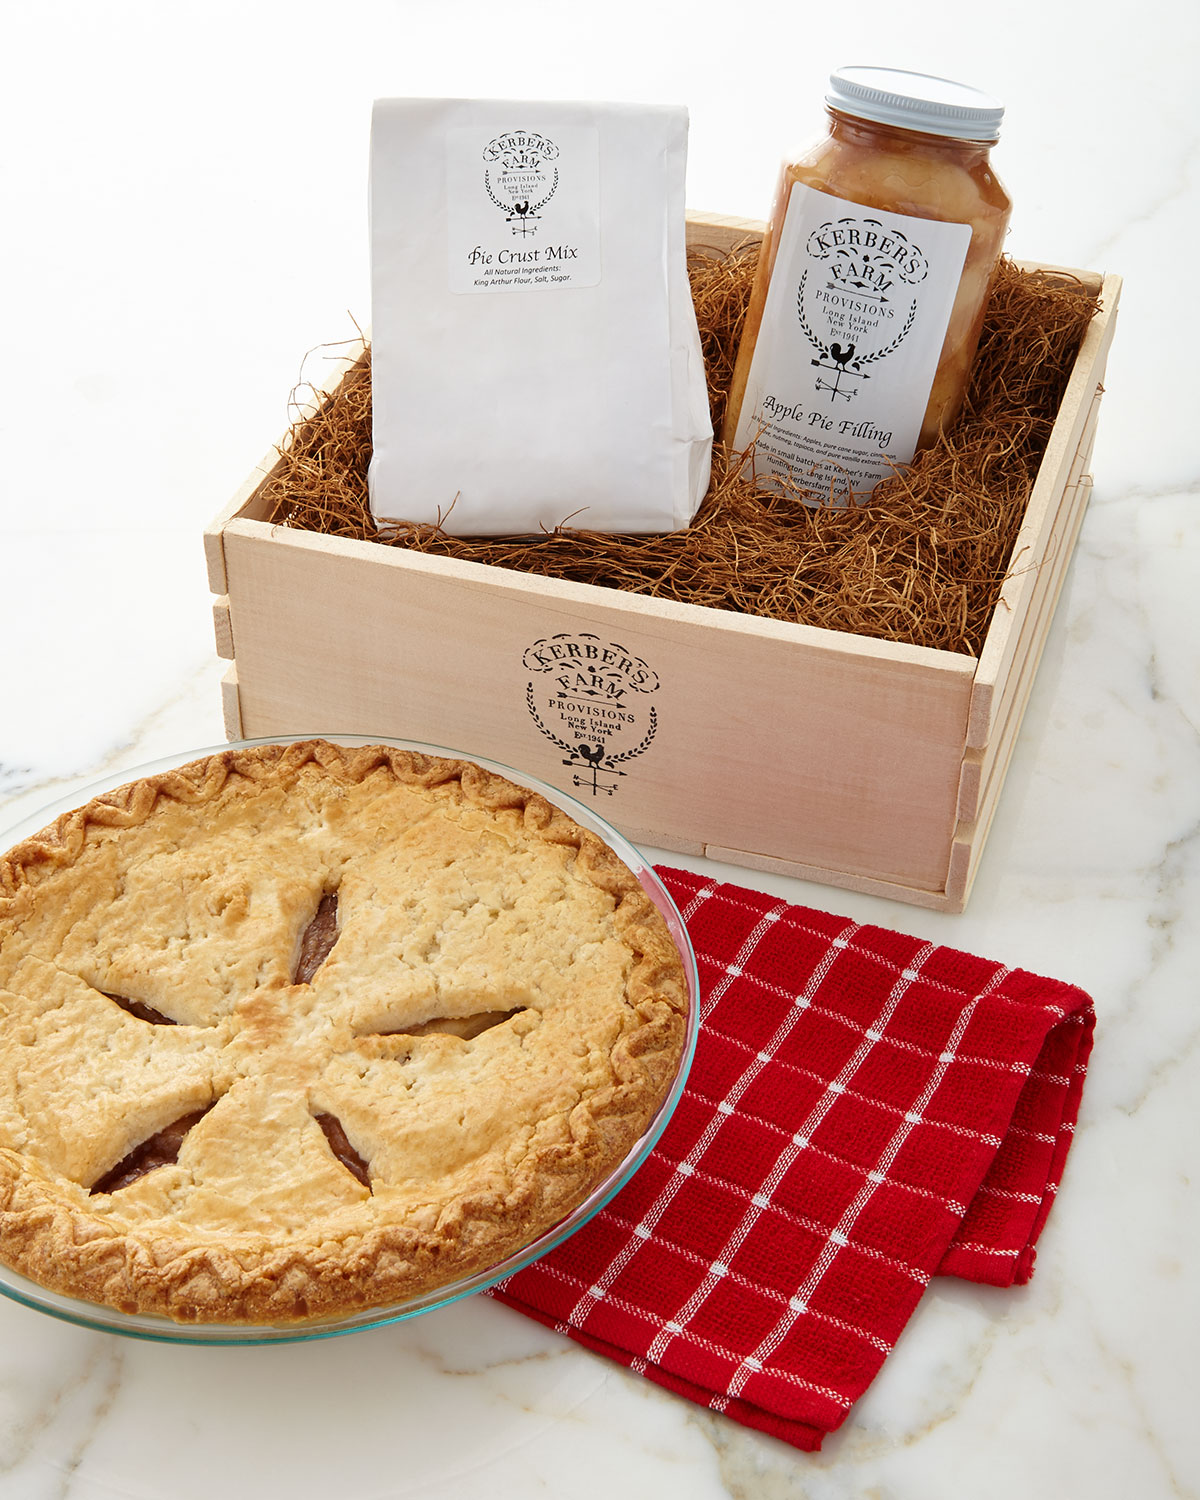 Huntington-based Kerber's Farm is selling a variety of different kits, such as the Apple Pie Kit above, through Neiman-Marcus stores.